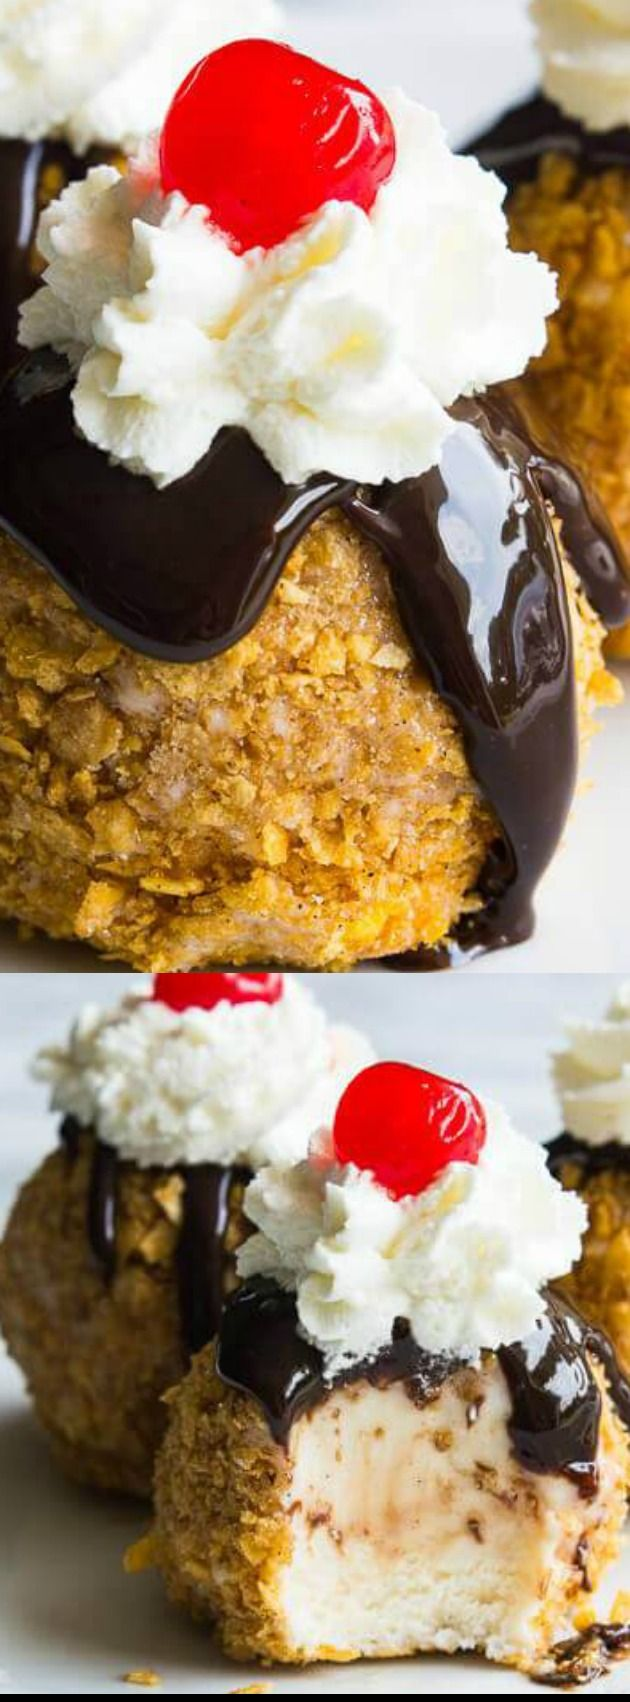 You are really going to love this EASY to make Mexican Fried Ice Cream from House of Yumm! It has all of the amazing flavors of a classic Fried Ice Cream without the actual frying!!